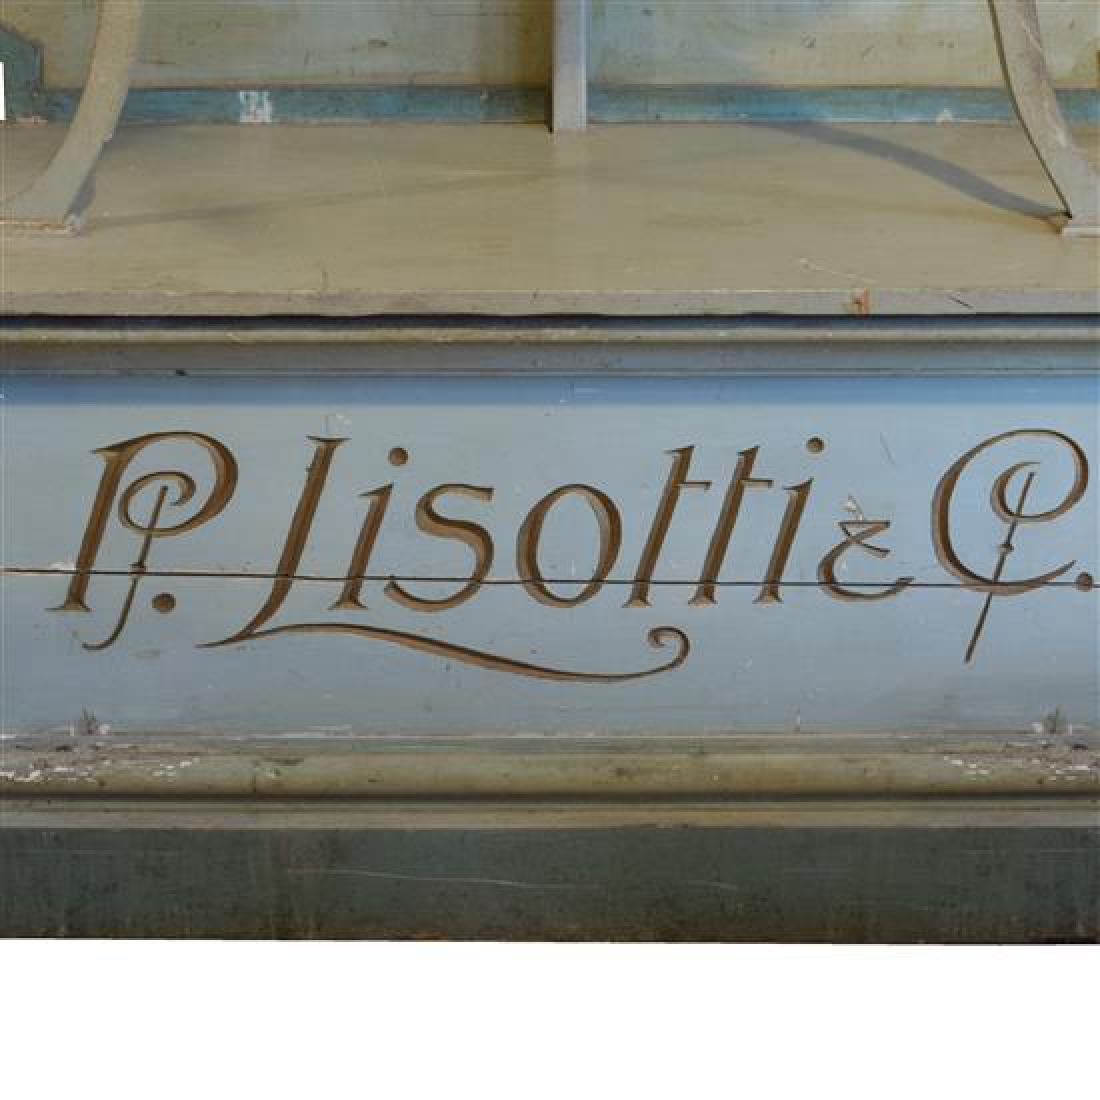 A Painted Six Tier Display Shelf for Lisotti Distilling - 2